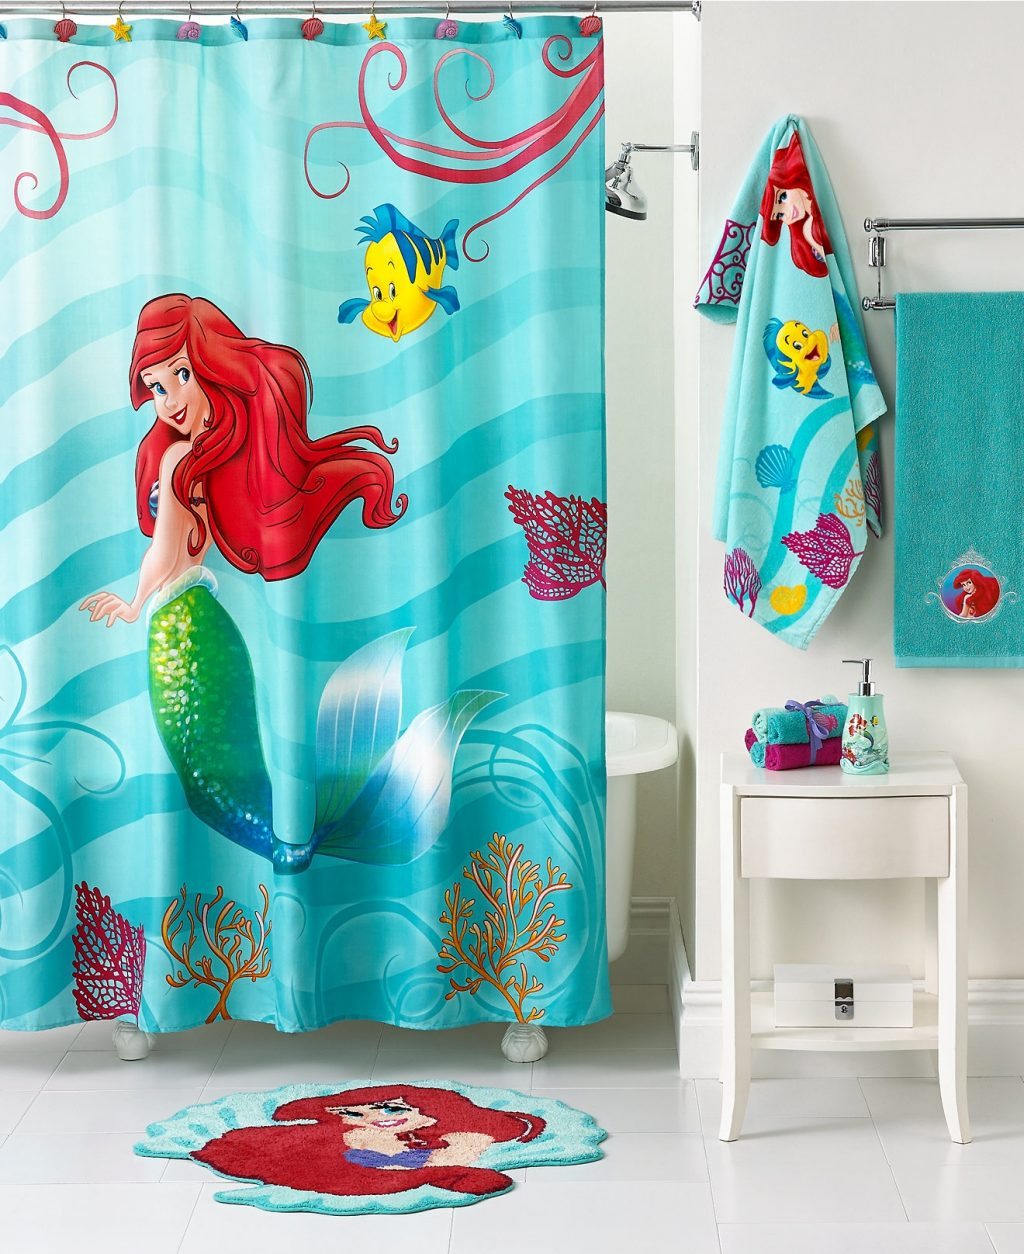 Mermaid Shower Curtain For Kids Bathroom Decor With White Small